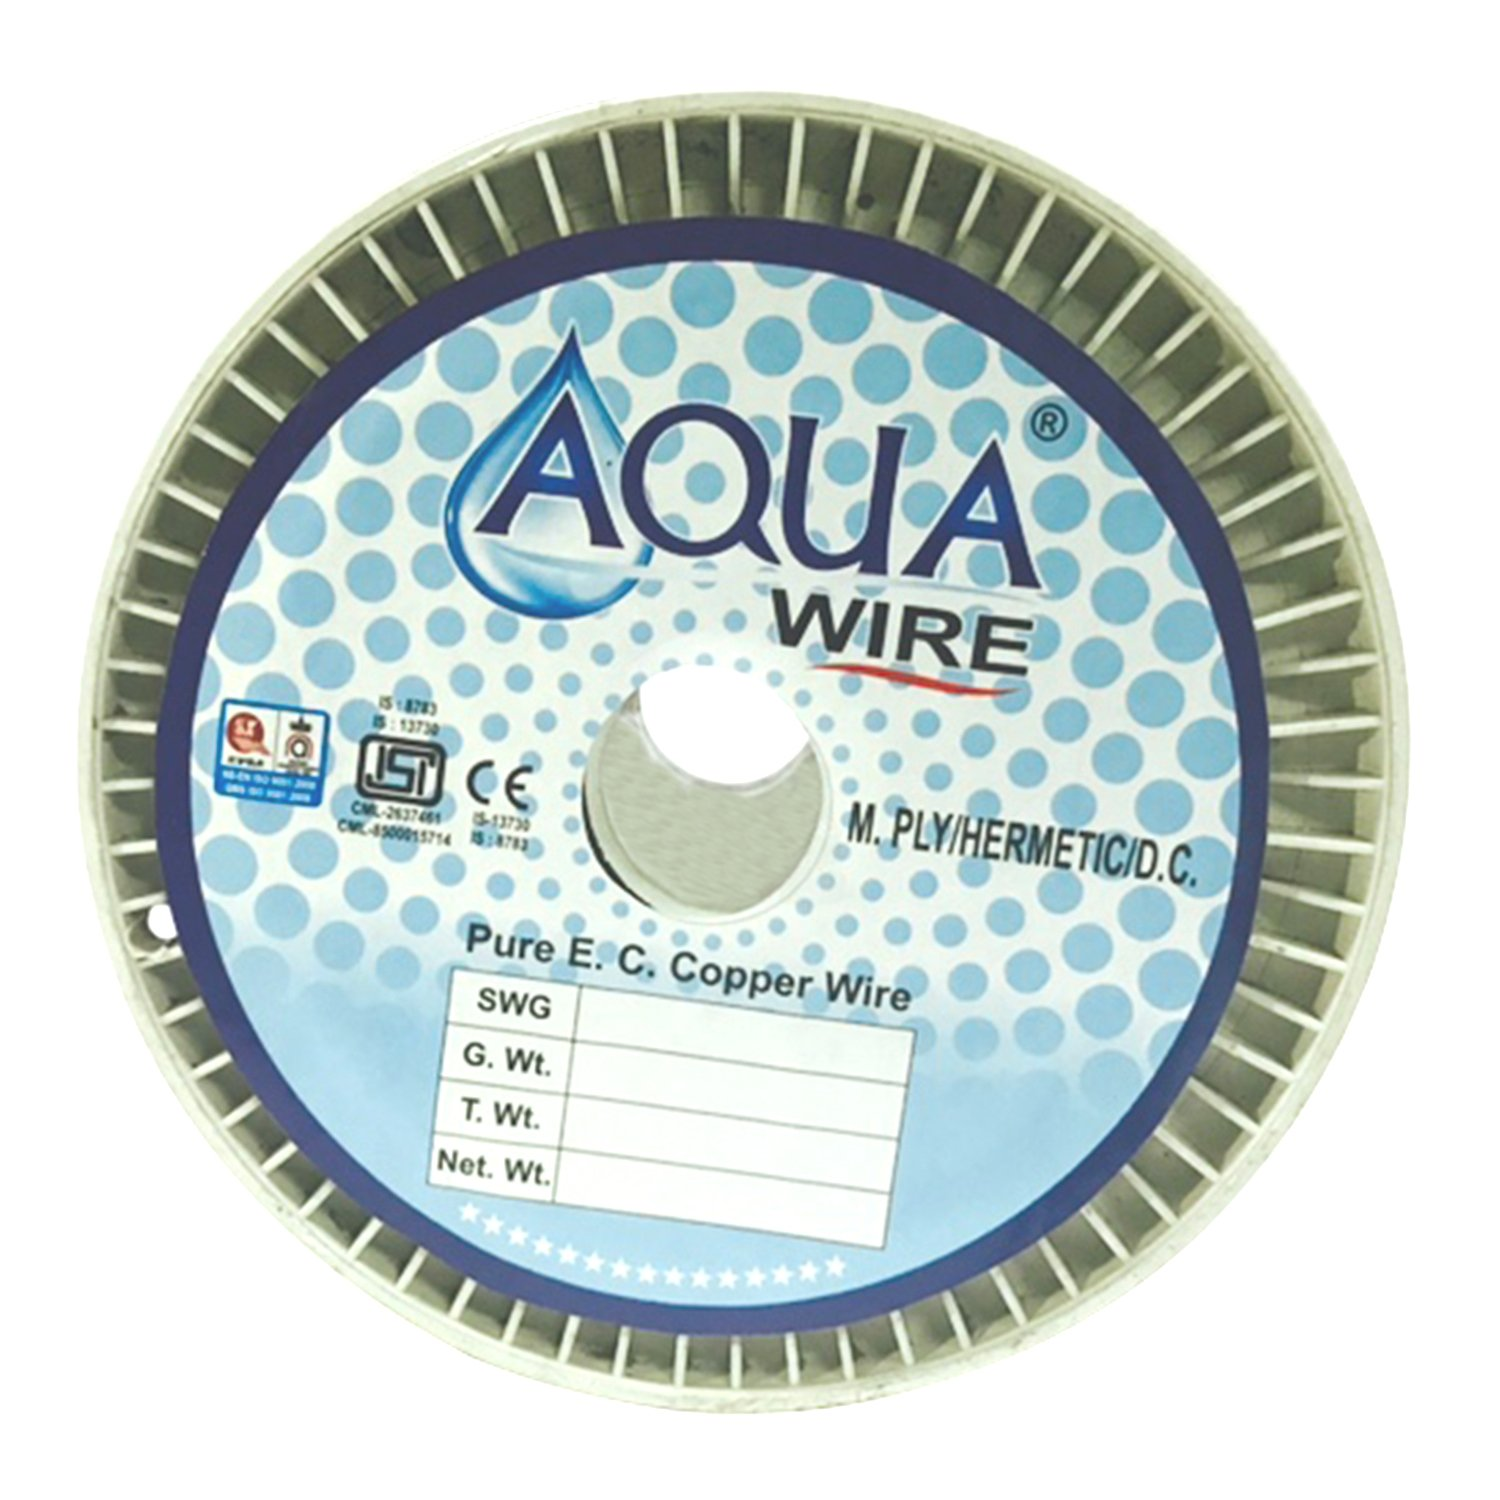 Aqua Wire Copper Winding Wire for Motor Pumps Size: Swg 23 or Dia ...